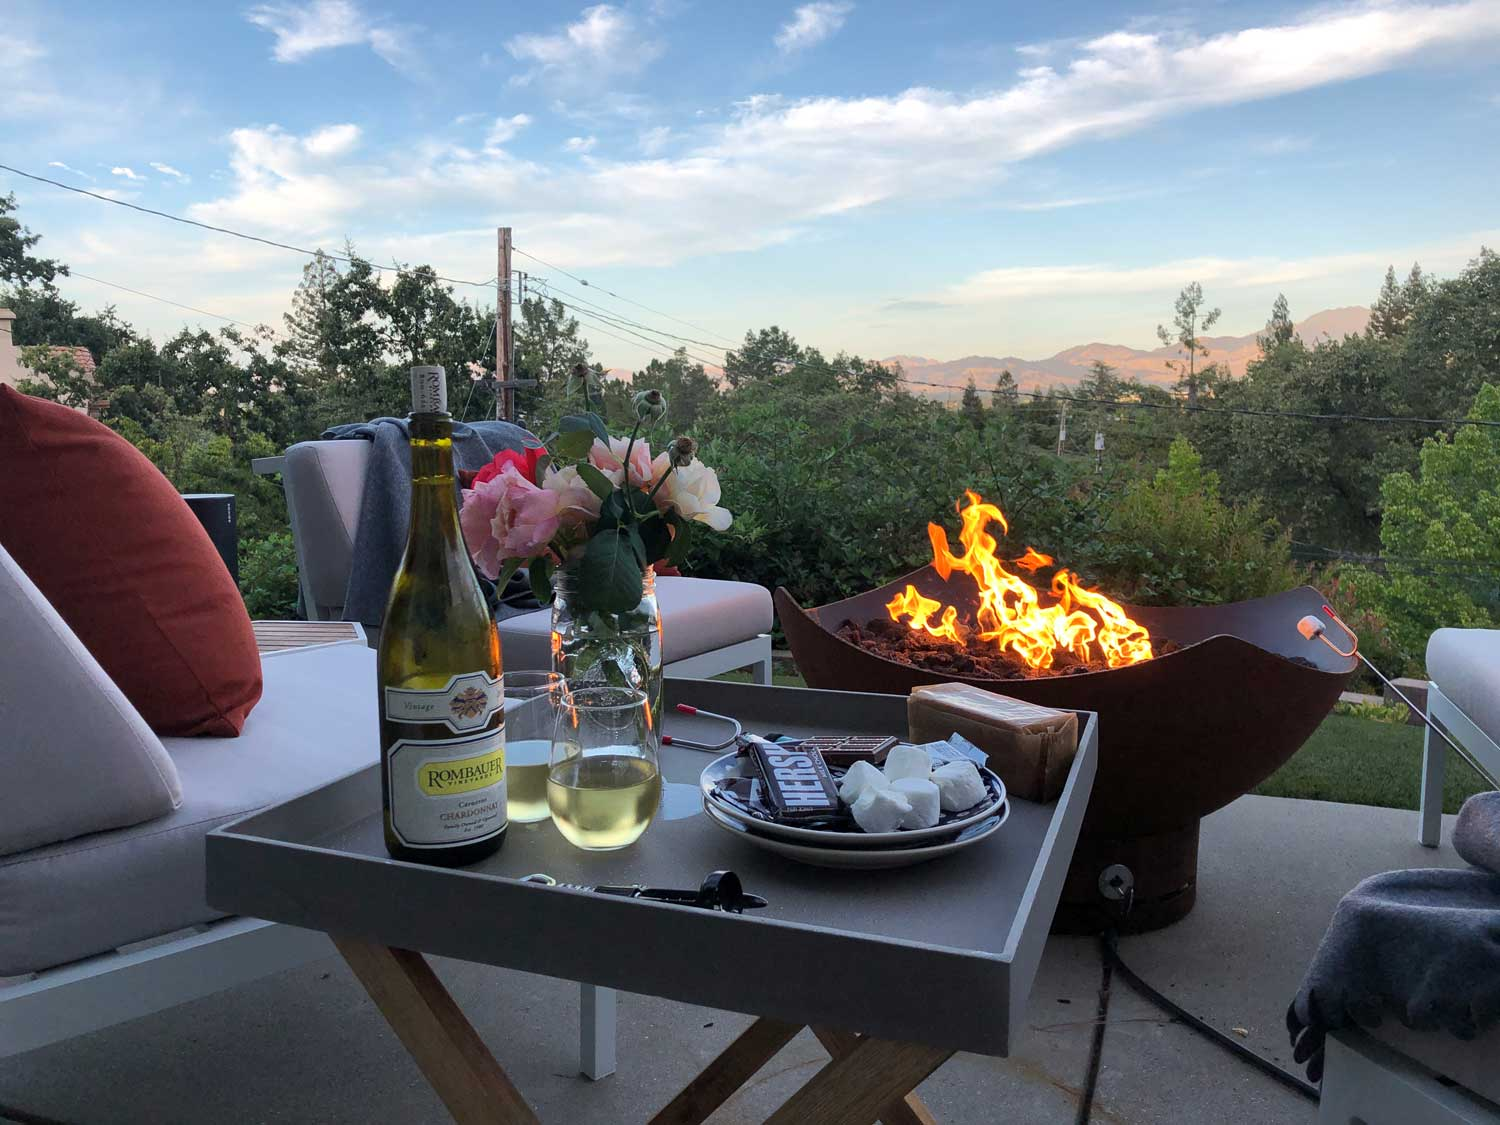 View of firepit, s'mores and wine glasses